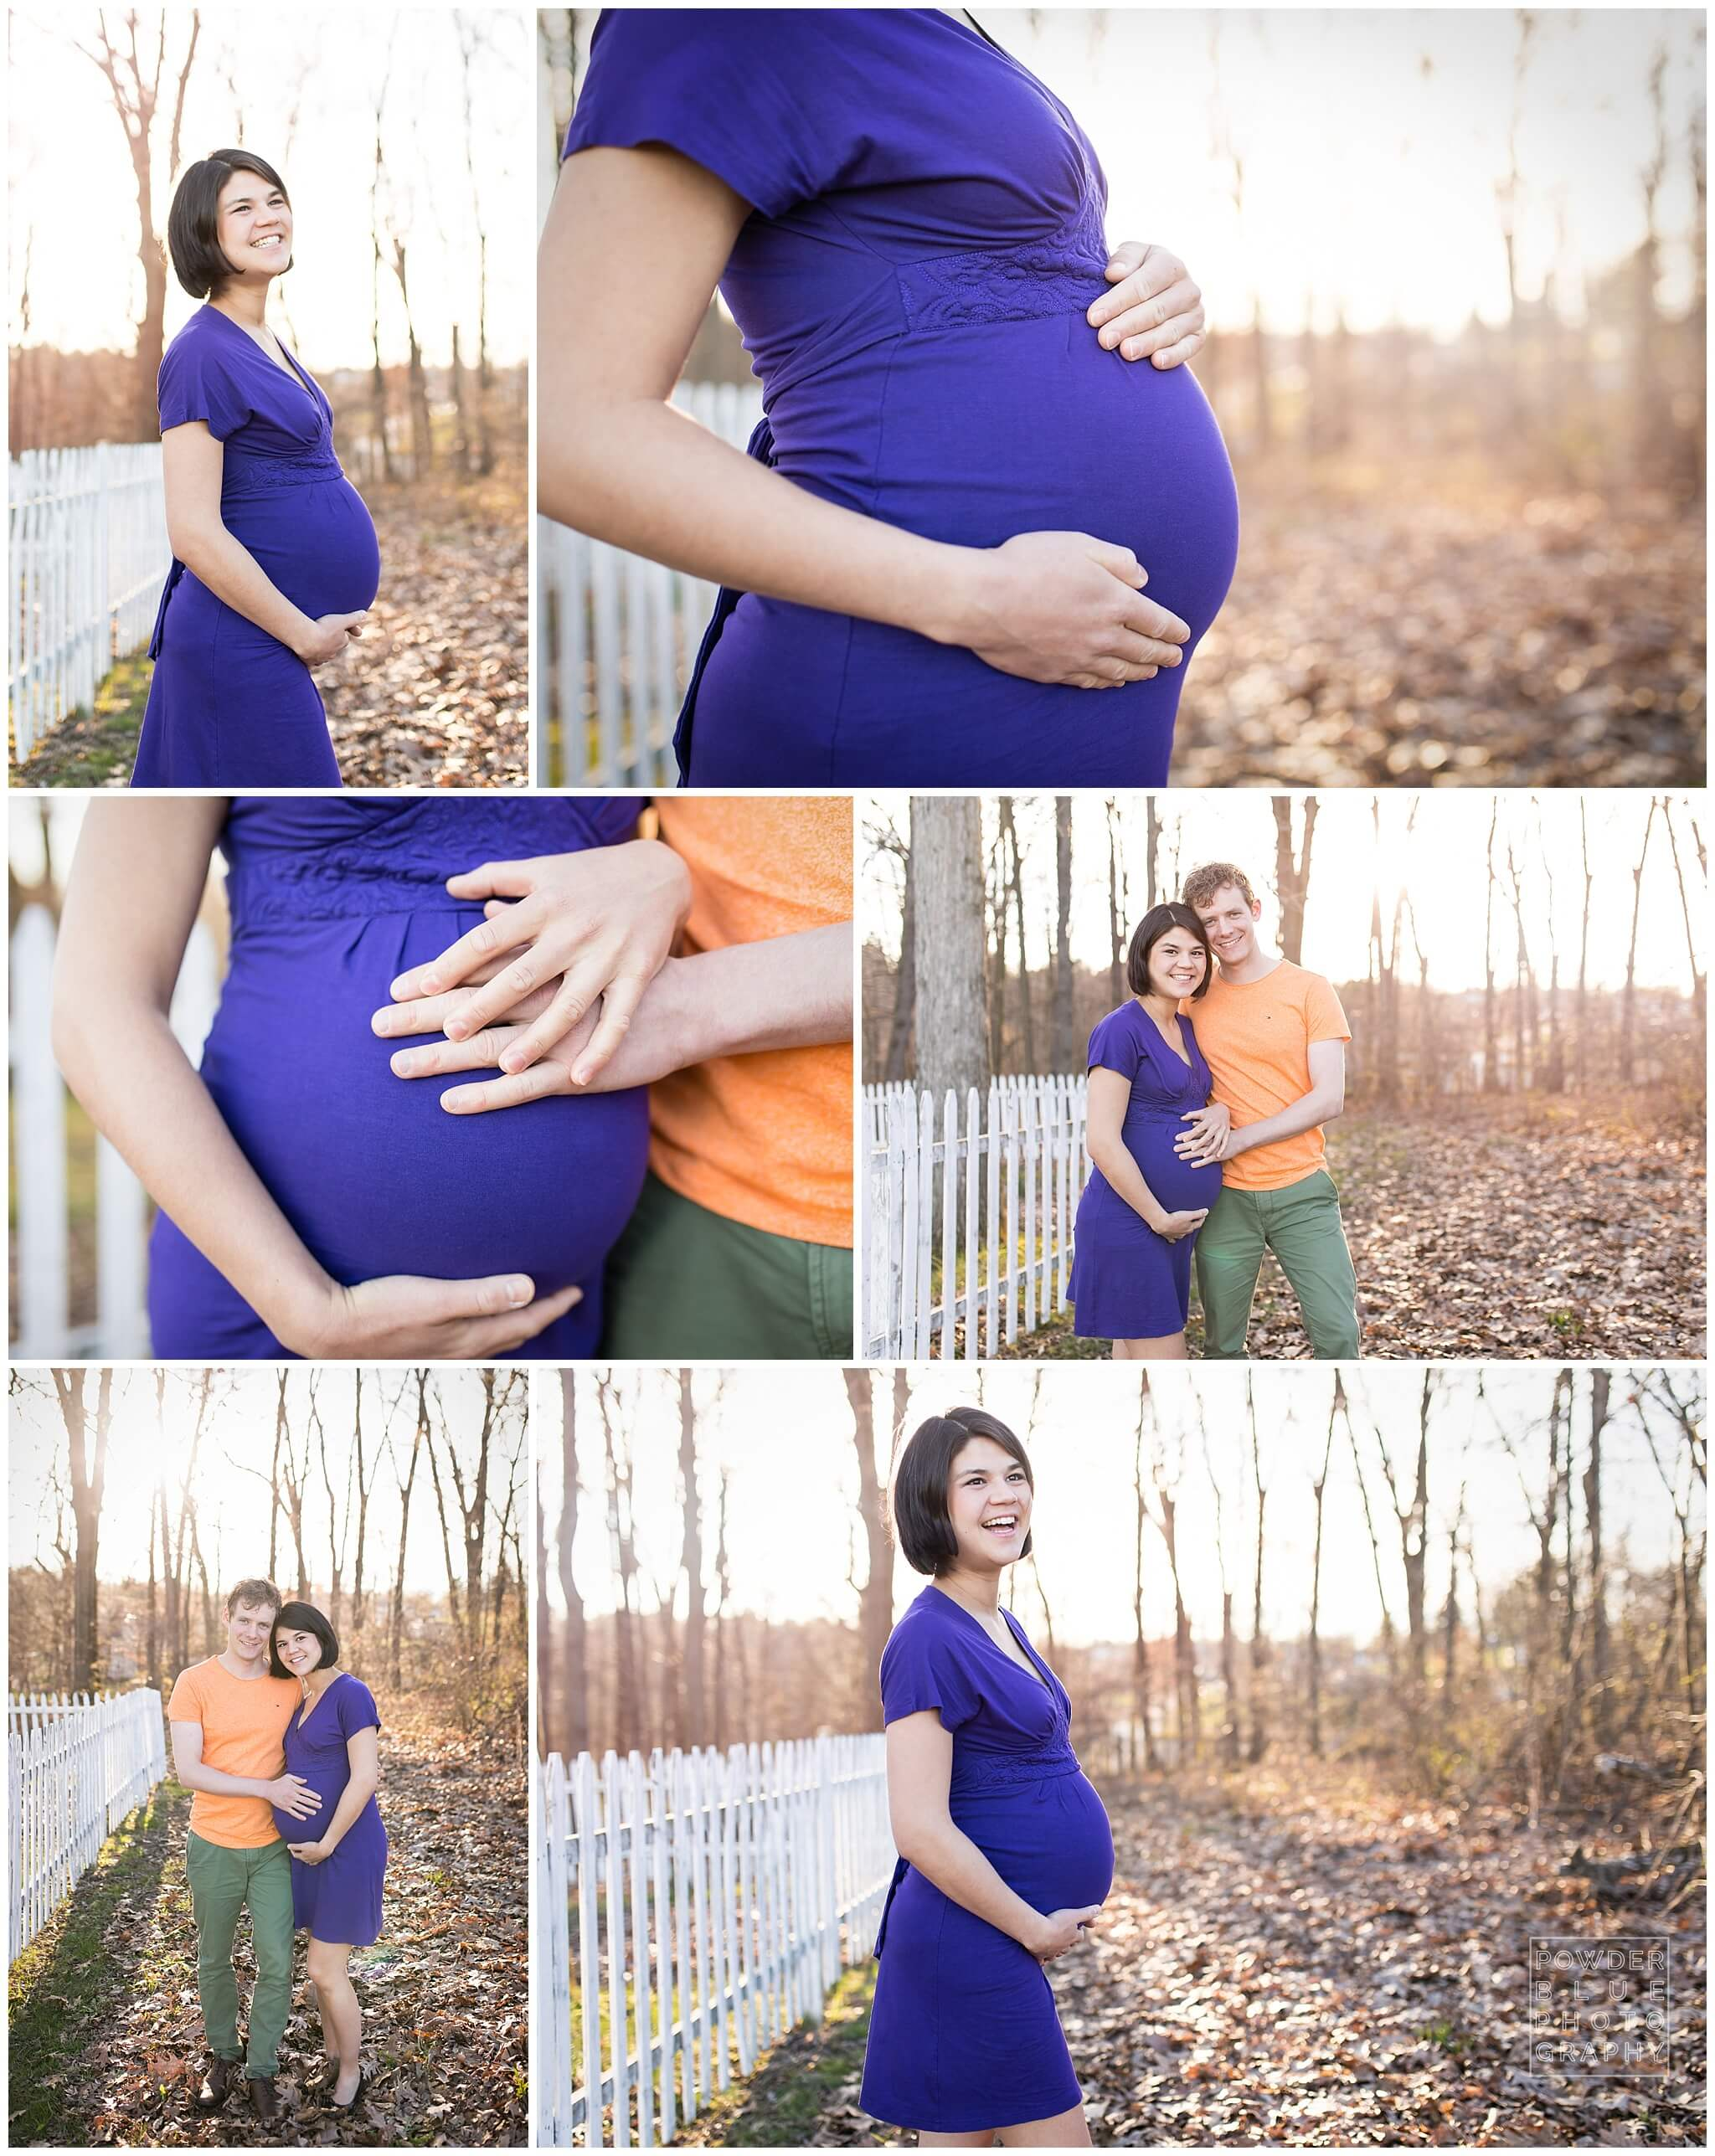 Pittsburgh maternity photography session at nature park.